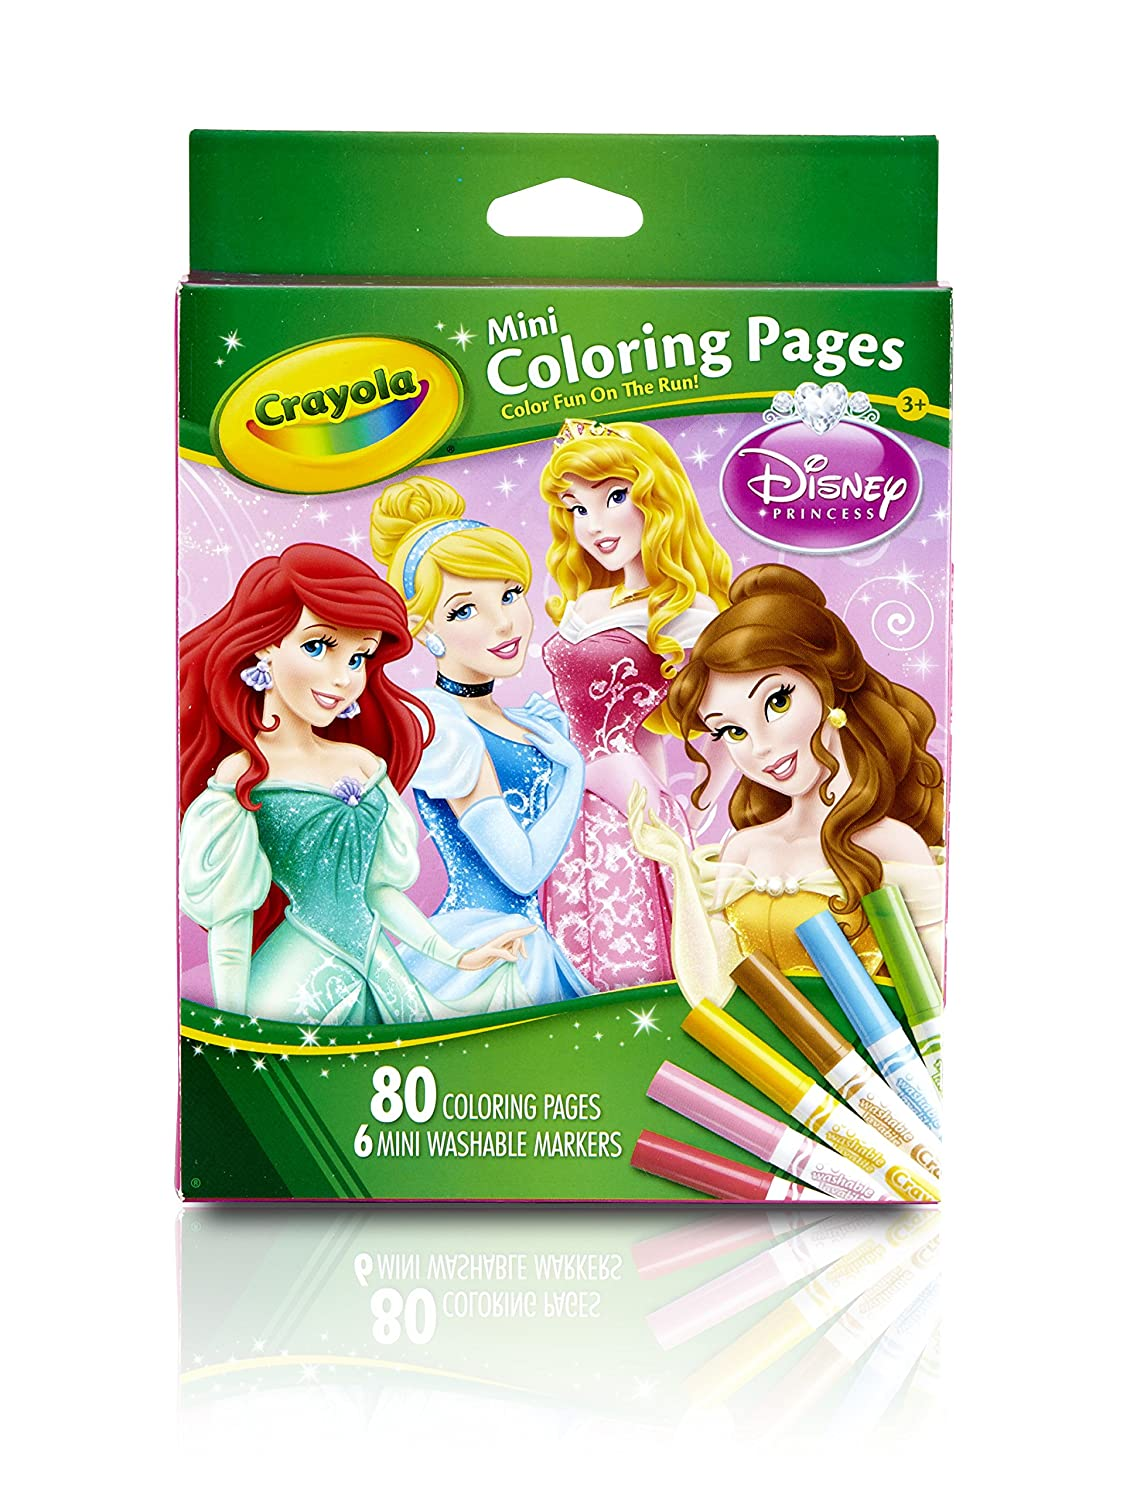 Amazon.com: Crayola Crayola Mini Coloring Pages - Disney Princess ...